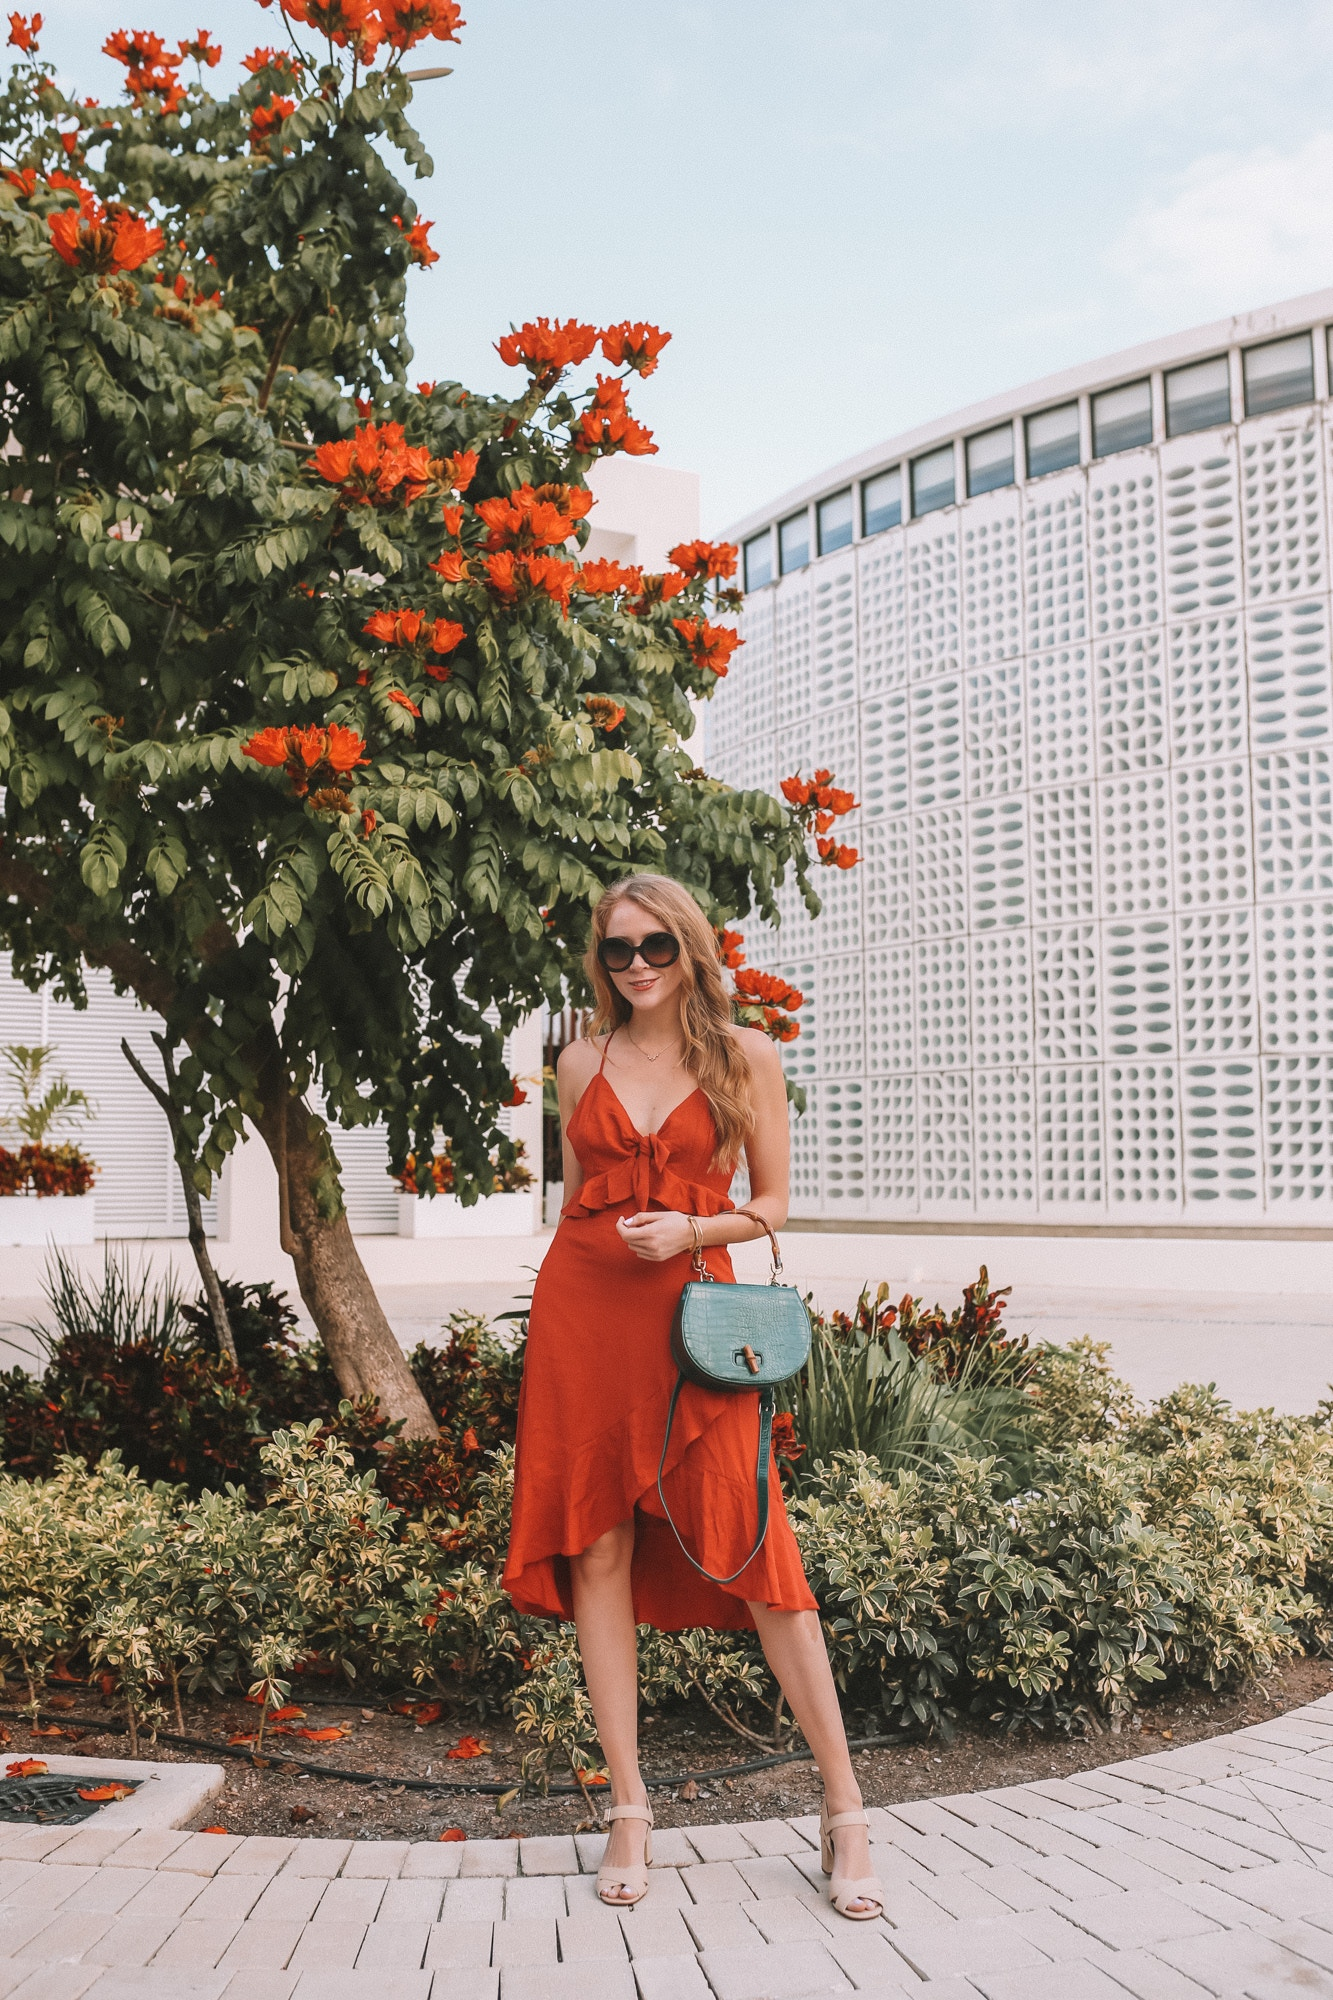 What to wear in the Mayan Riviera? I'm sharing this orange linen dress and statement accessories as outfit inspiration, as well as a packing list for a chic resort wear wardrobe that's perfect for visiting Mexico in winter!